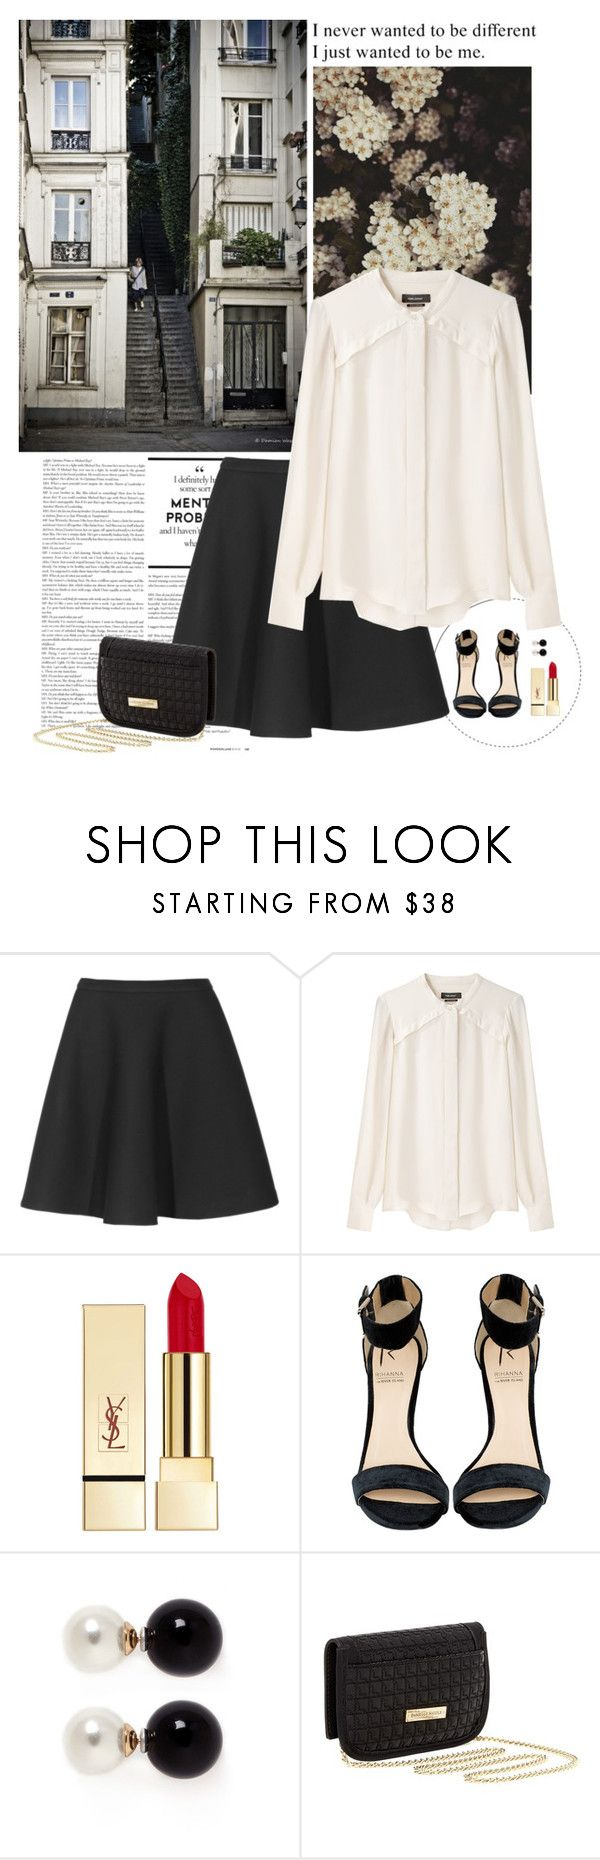 """""""I Just Wanted To Be Me..."""" by allweknowisfalling ❤ liked on Polyvore featuring Neil Barrett, Isabel Marant, PUR, Rihanna For River Island, Kenneth Jay Lane and Danielle Nicole"""